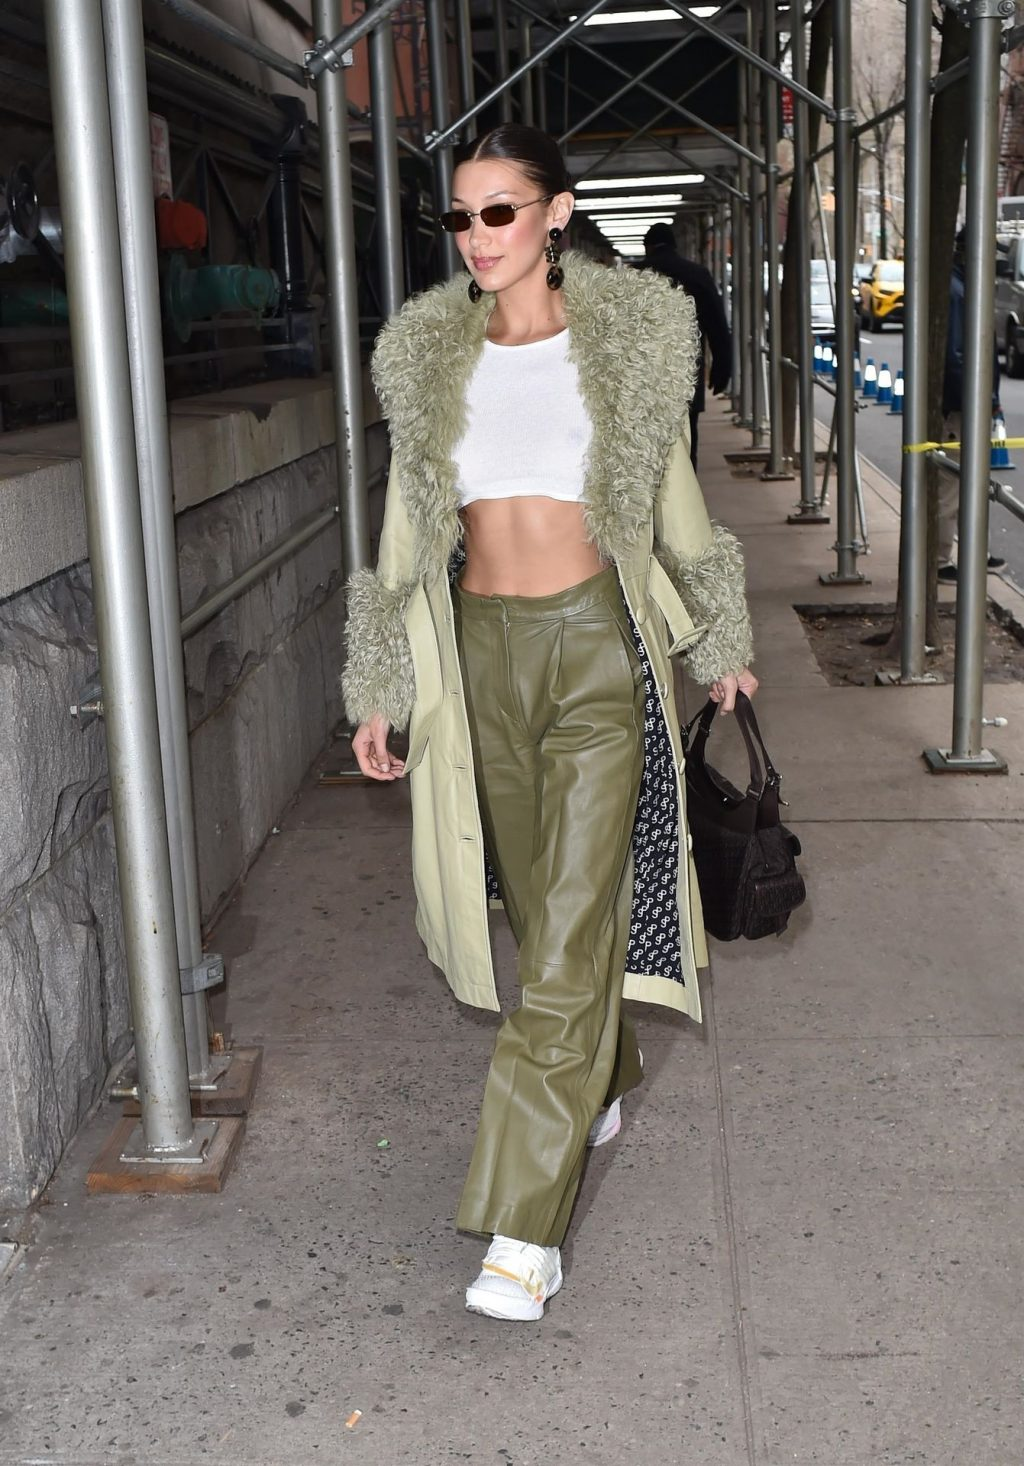 Bella Hadid See through The Fappening Blog 7 1 1024x1466 - Braless Bella Hadid Arrives at the Park Avenue Armory for the Marc Jacobs Fashion Show (59 Photos)